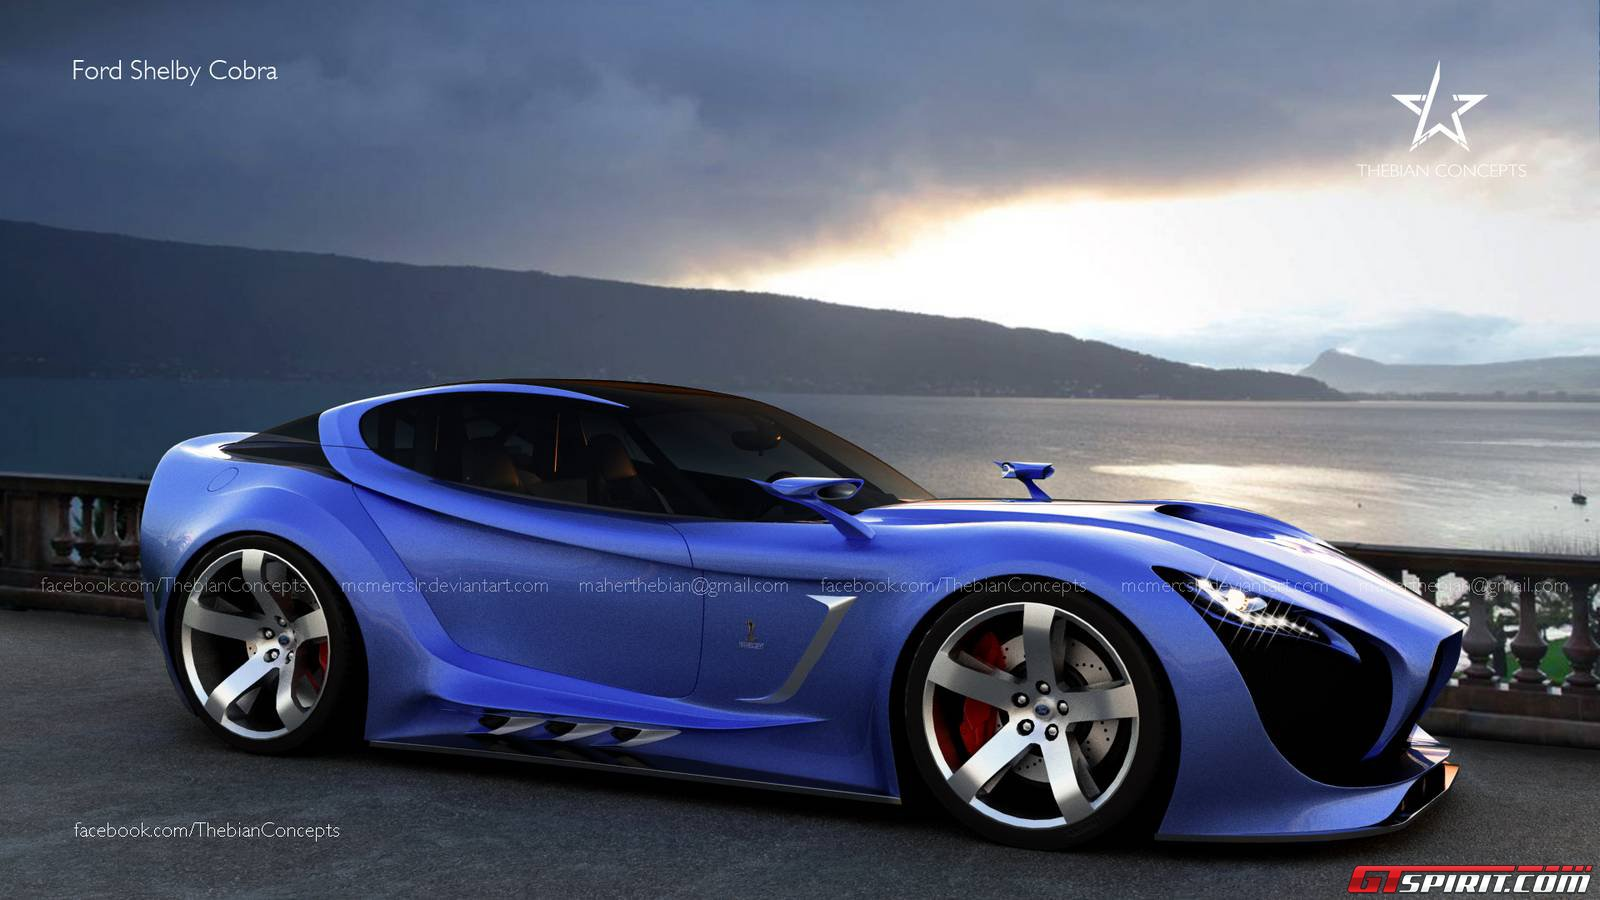 Futuristic Ford Shelby Cobra Visualized By Thebian